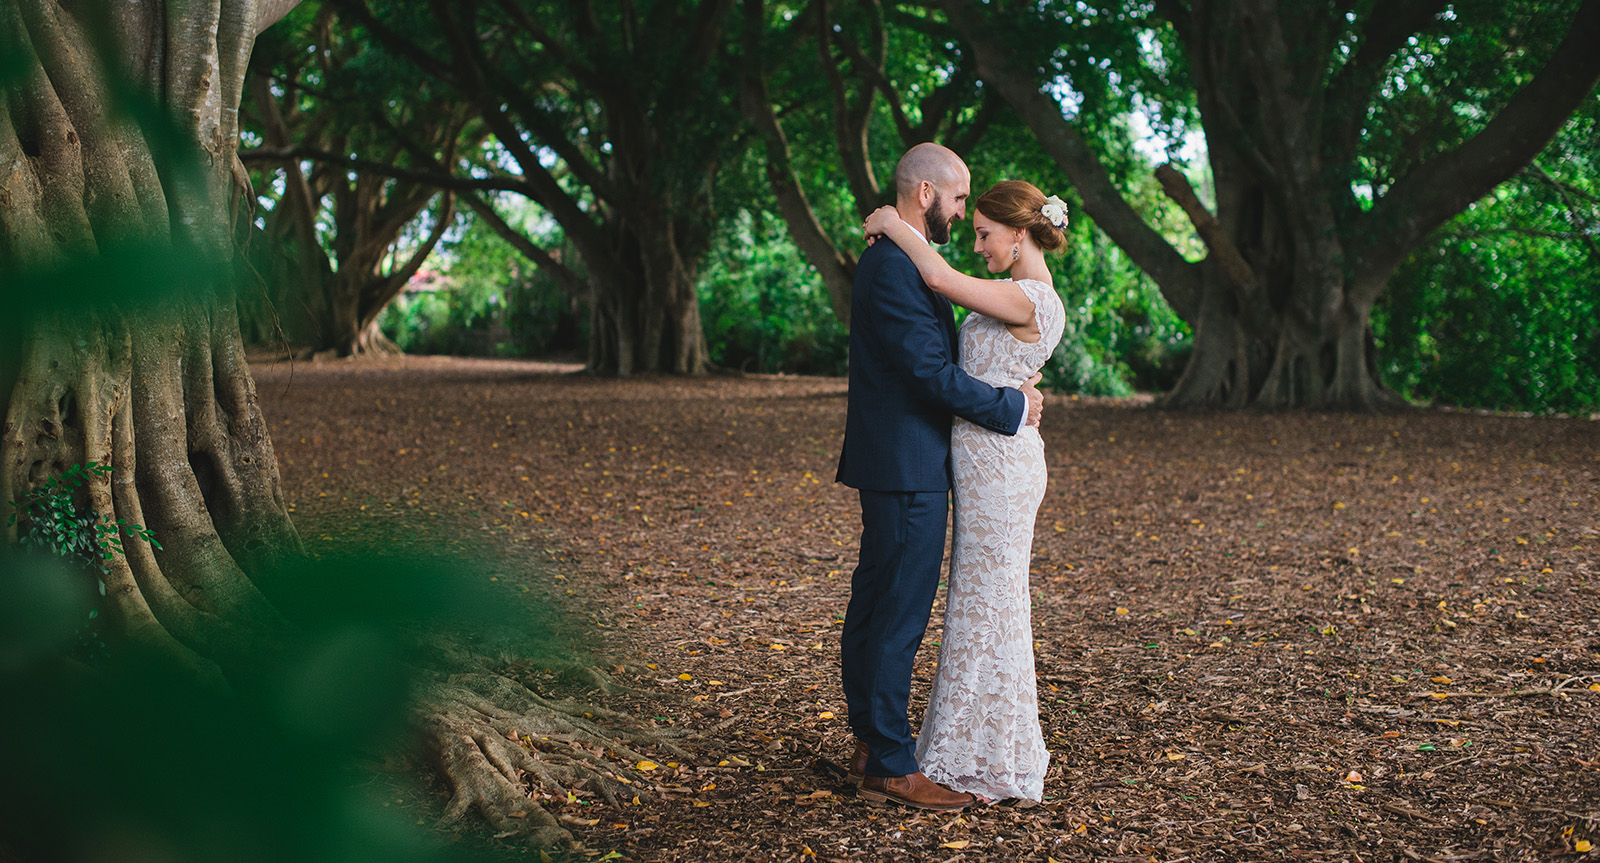 Lionheart Photography are Brisbane and Melbourne wedding photographers.